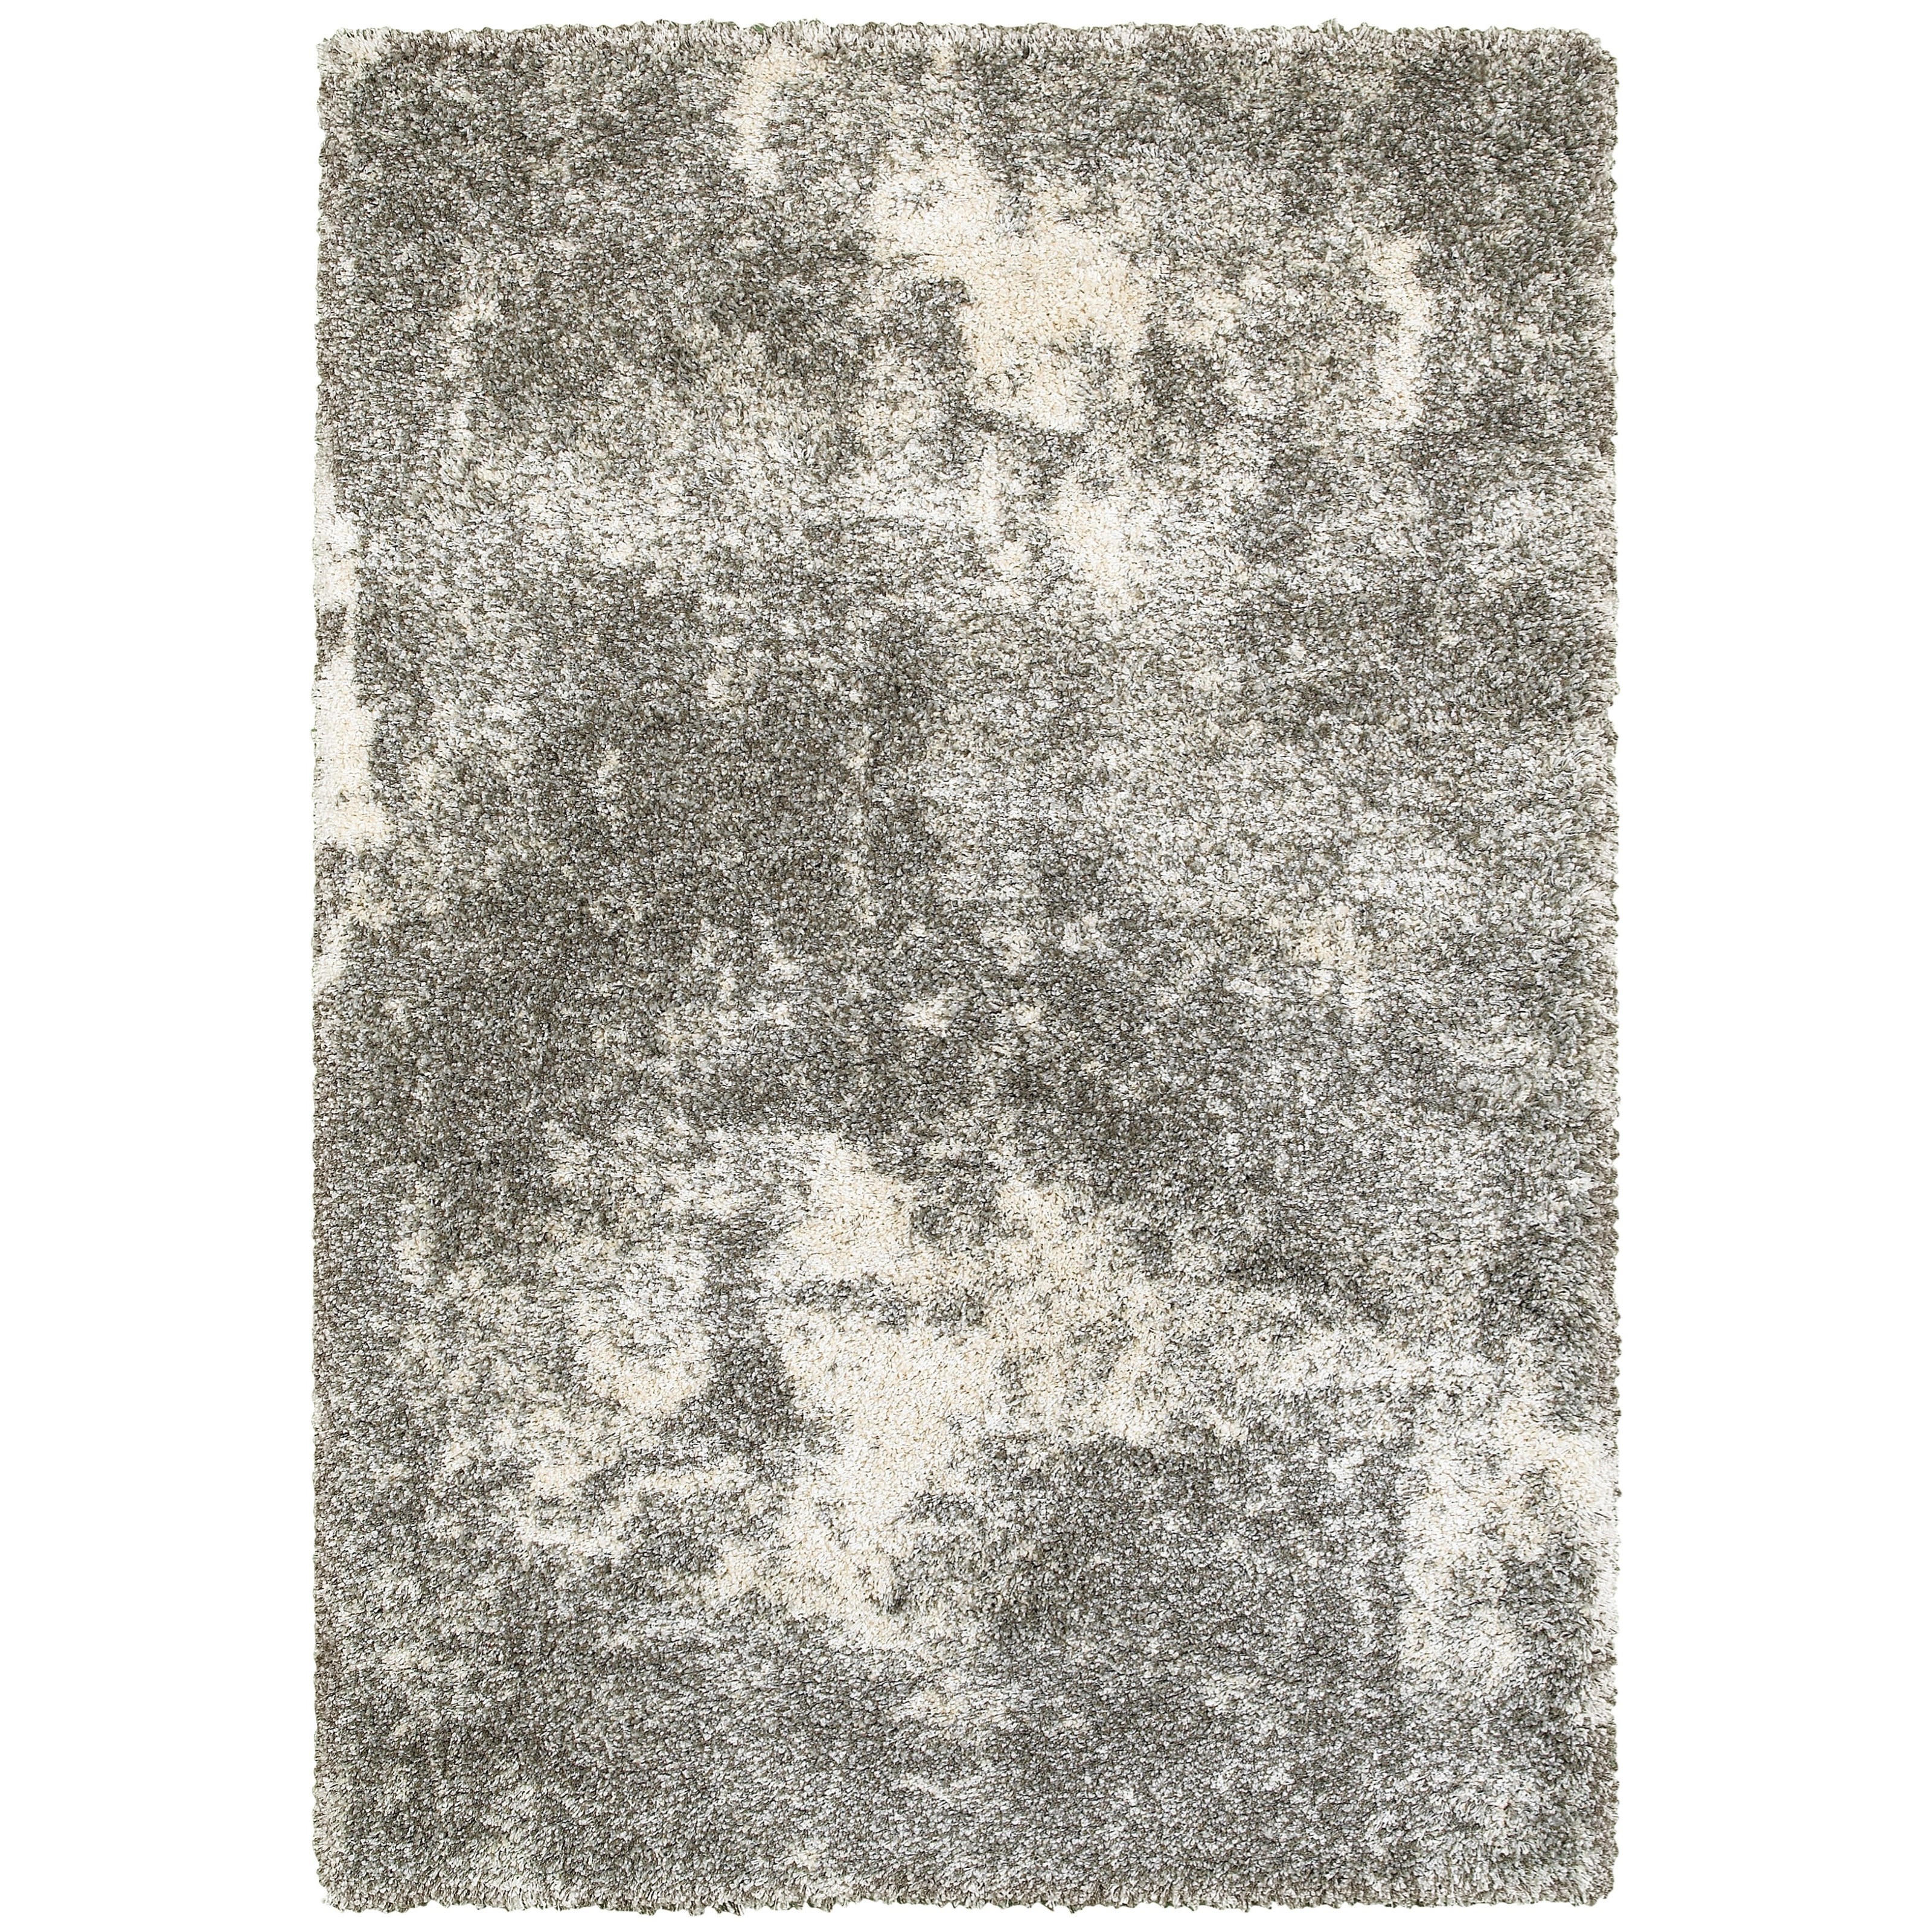 "Henderson 7'10"" X 10'10"" Shag Grey/ Ivory Rectangle Ru by Oriental Weavers at Darvin Furniture"